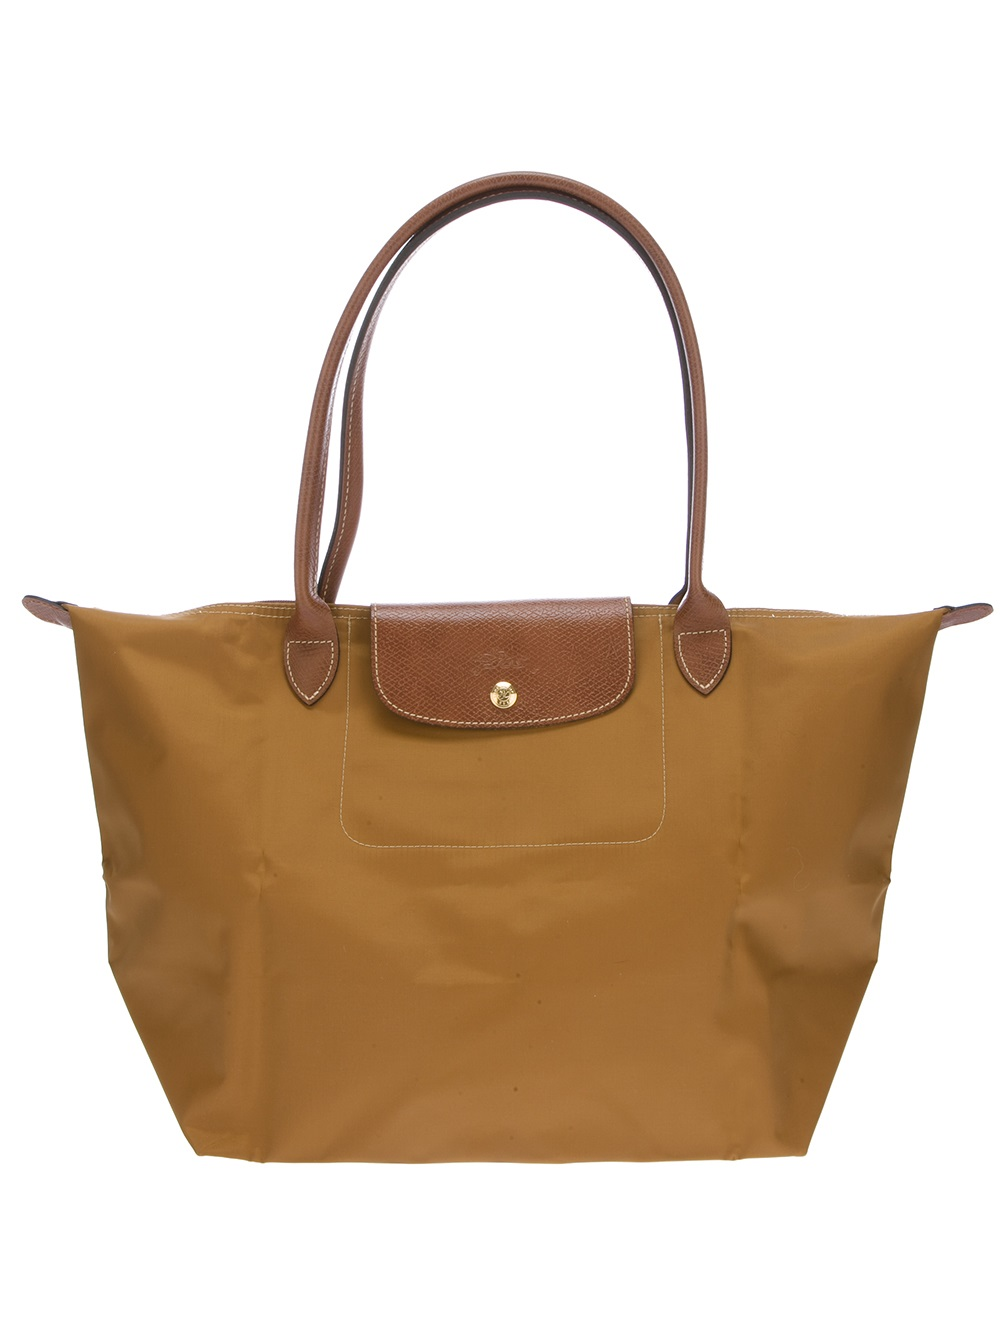 longchamp le pliage tote in beige grey lyst. Black Bedroom Furniture Sets. Home Design Ideas